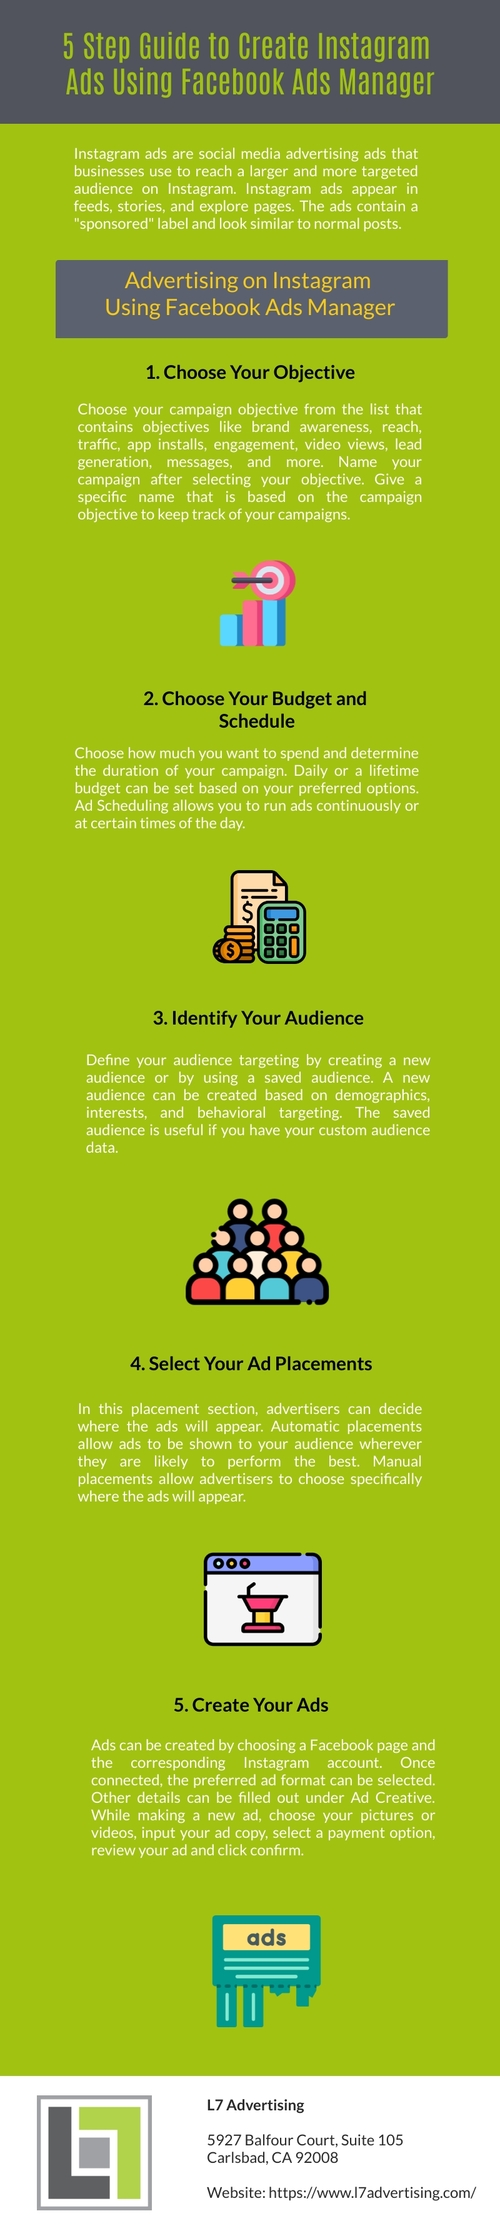 5 Step Guide to Create Instagram Ads Using Facebook Ads Mana... via L7 Advertising